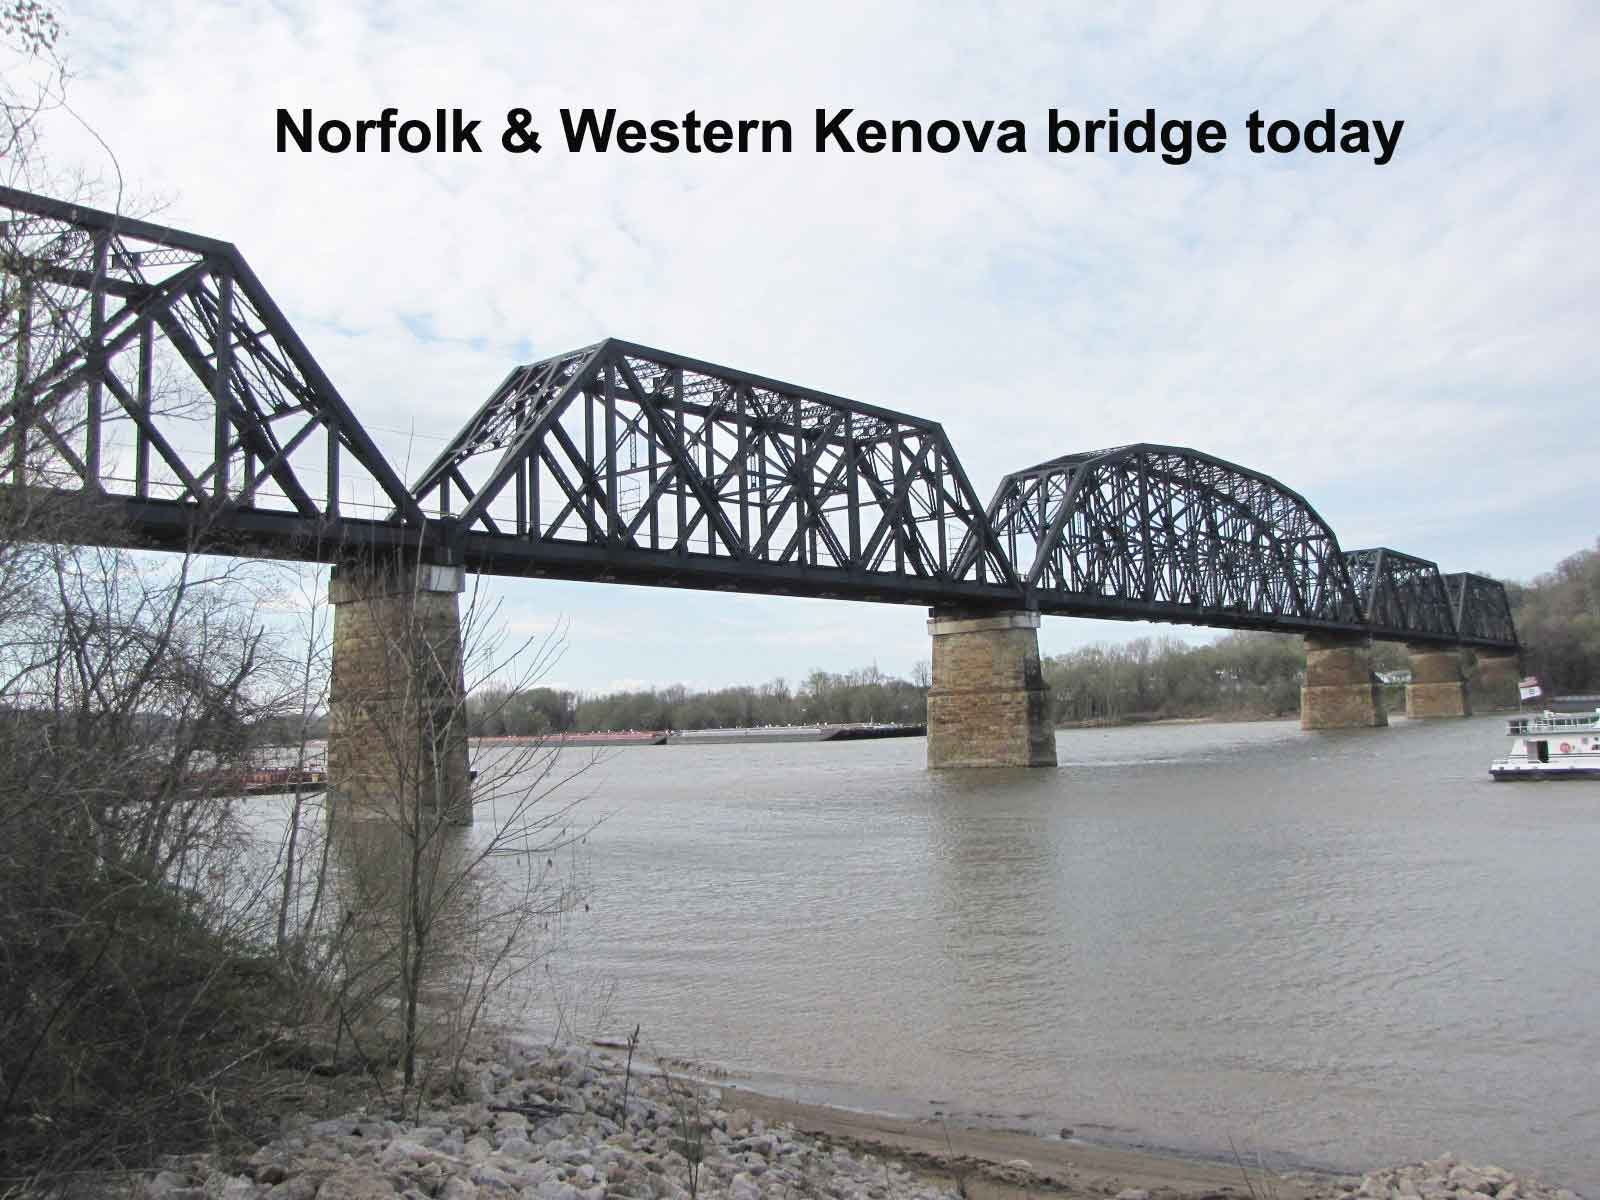 N&W bridge crew pose on Kenova Bridge